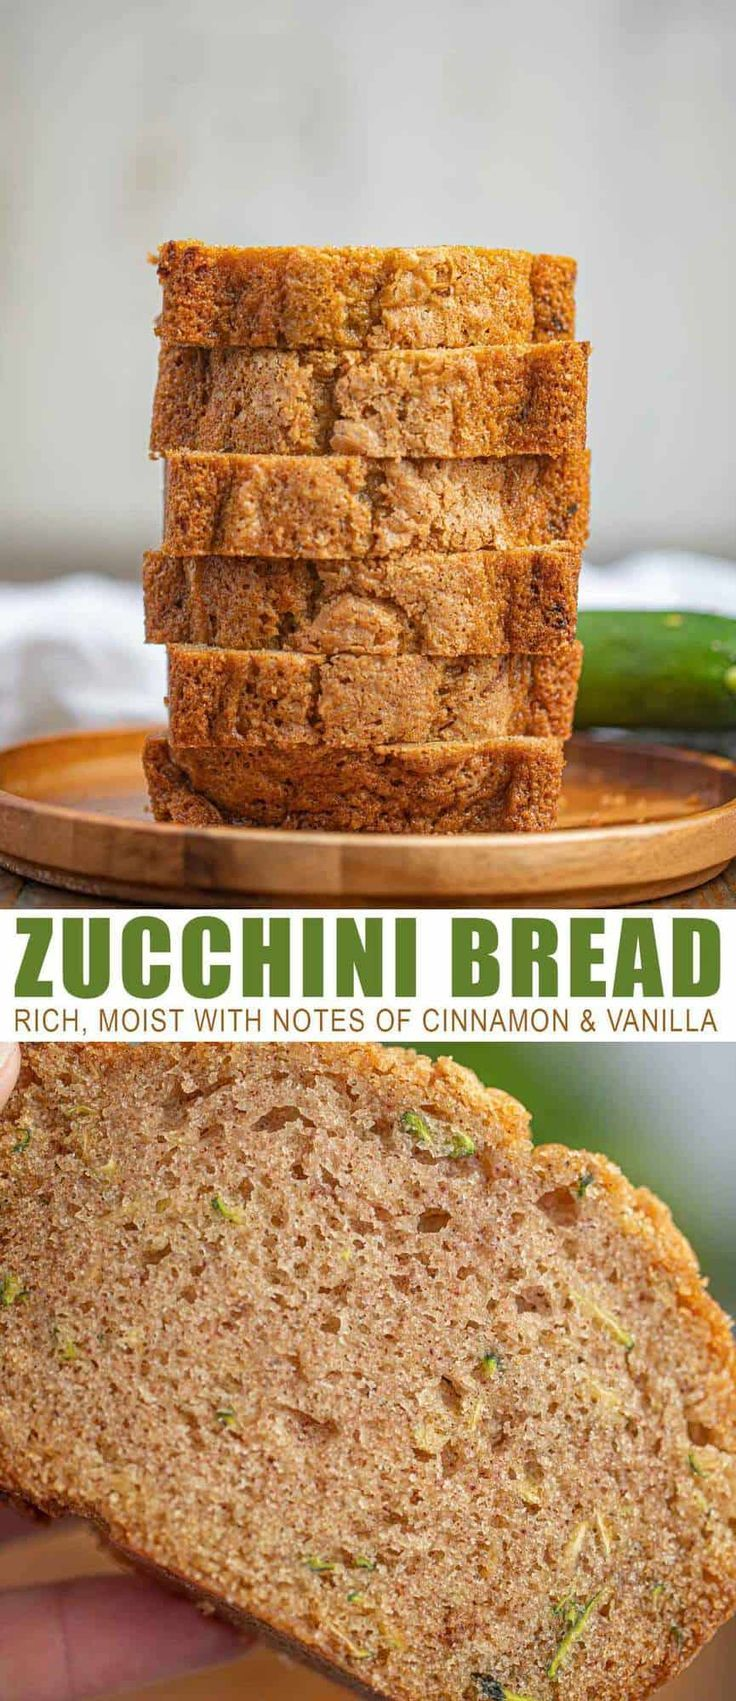 rich moist zucchini bread with notes of cinnamon and